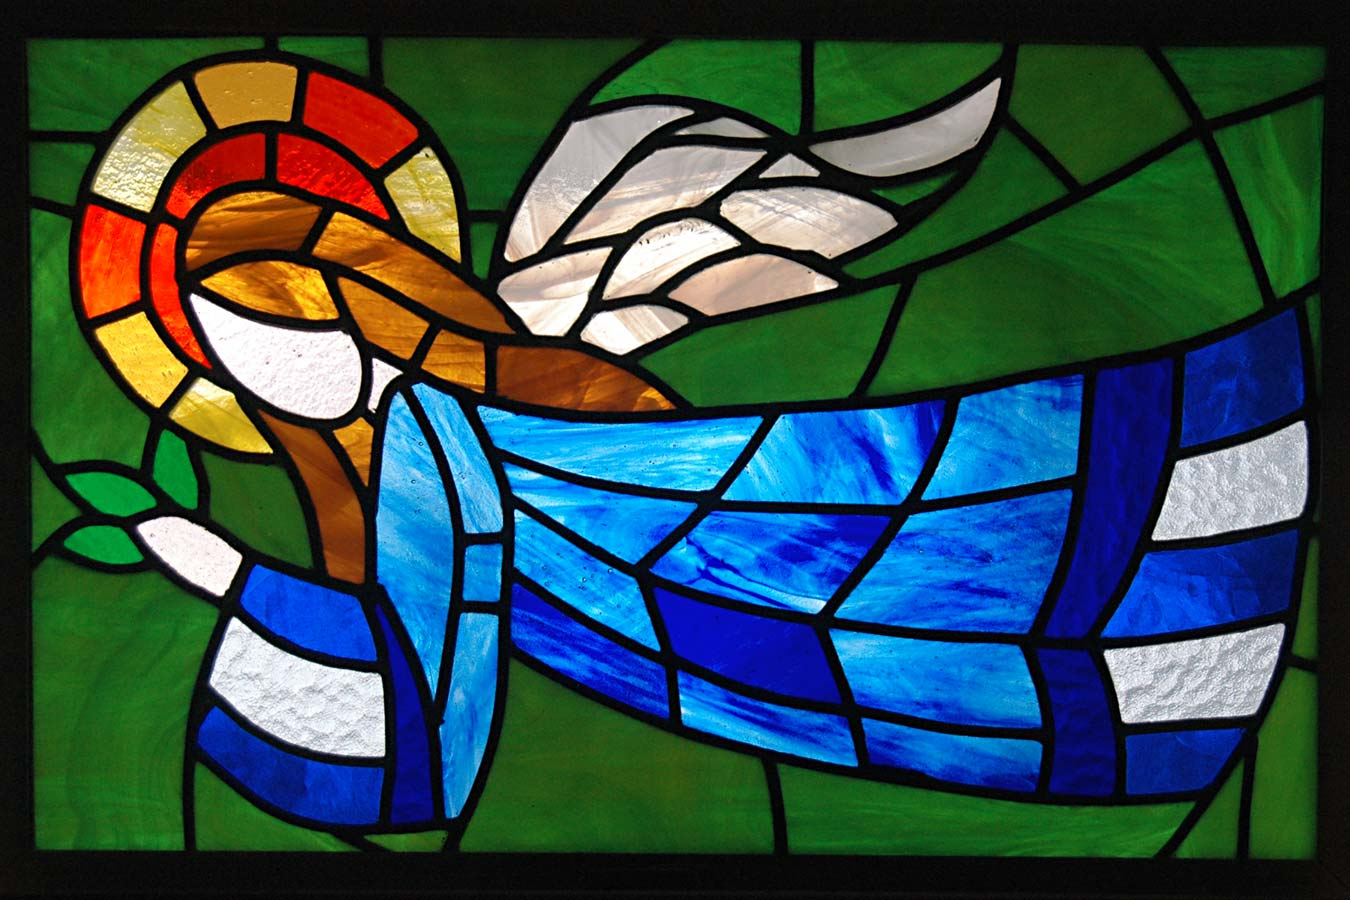 Angel stained glass window by Artist Marian Grisa